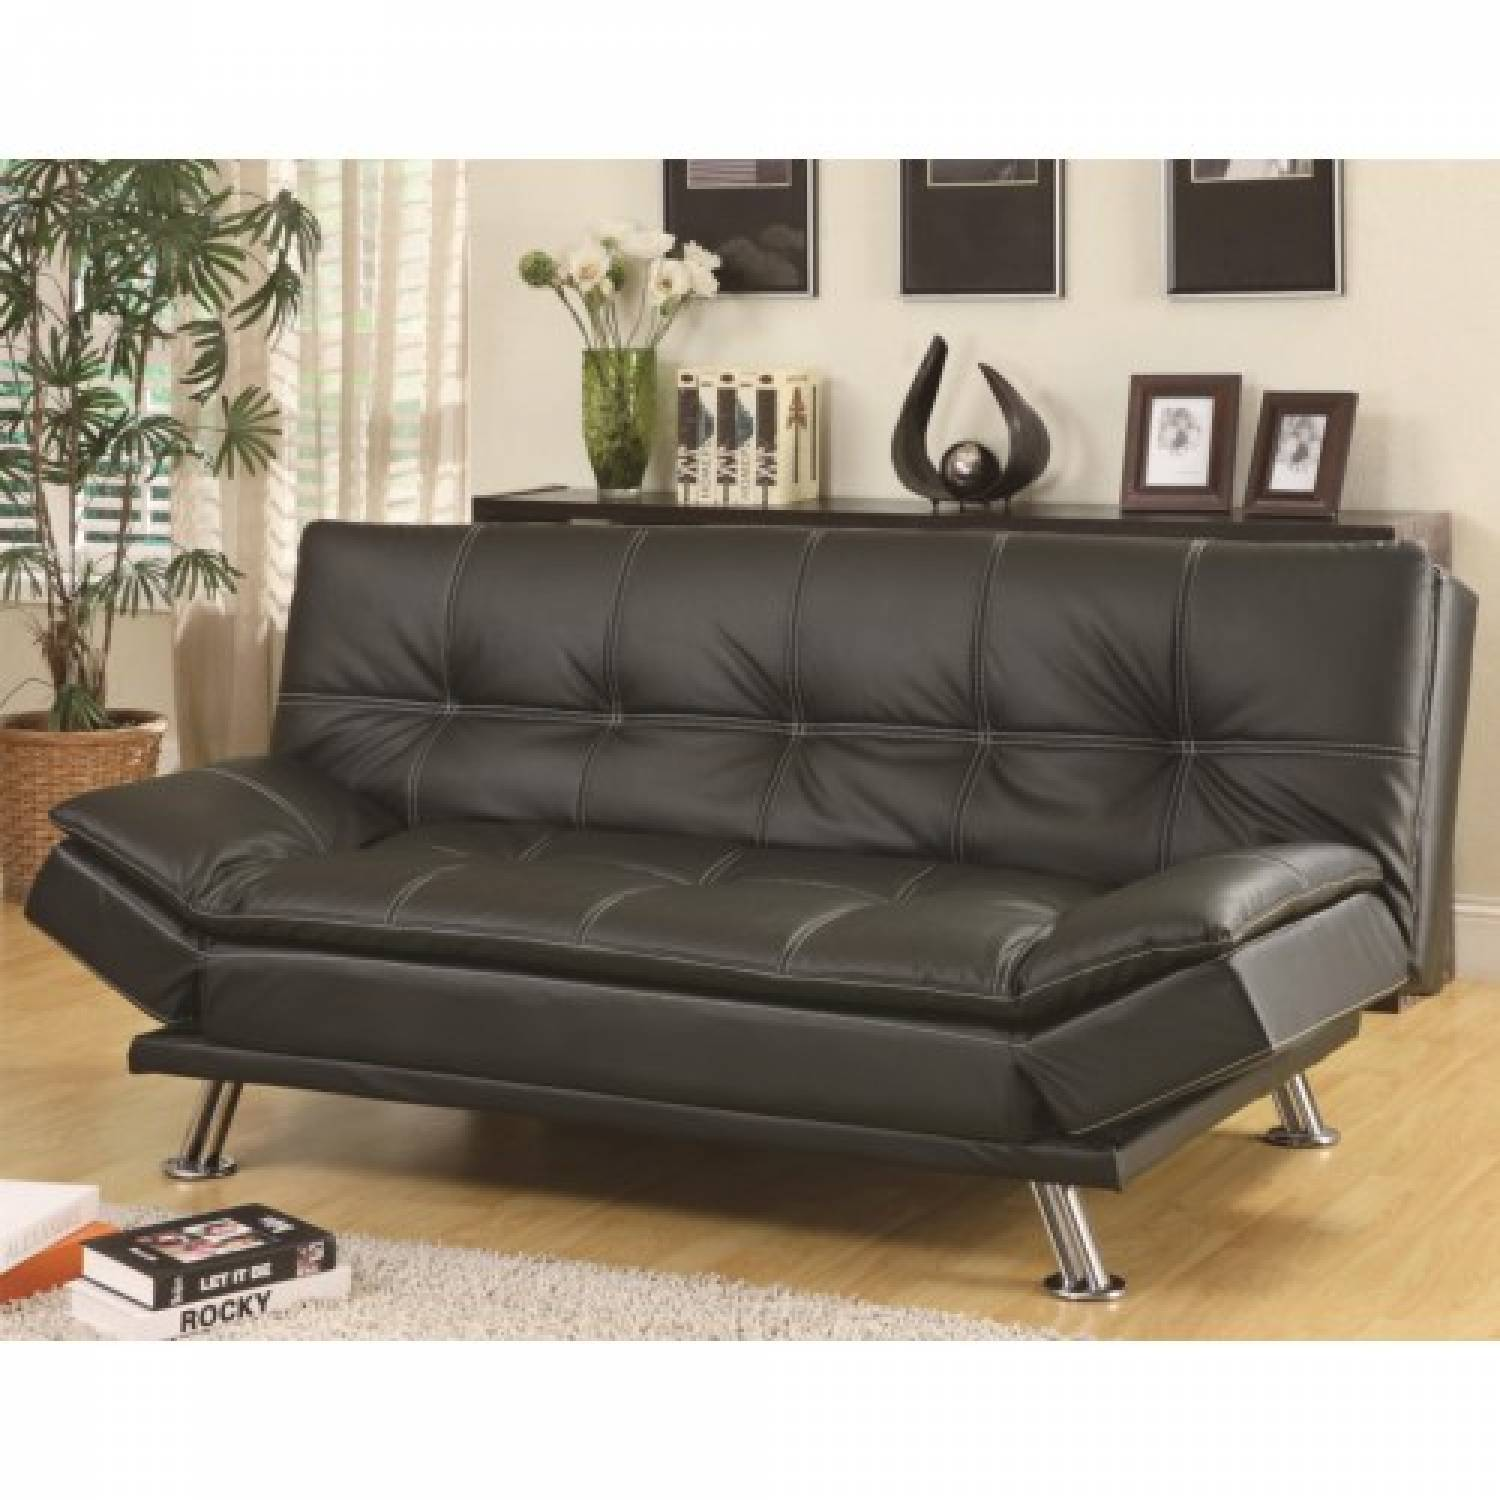 300281 Sofa Beds and Futons Contemporary Styled Futon Sleeper Sofa Bed